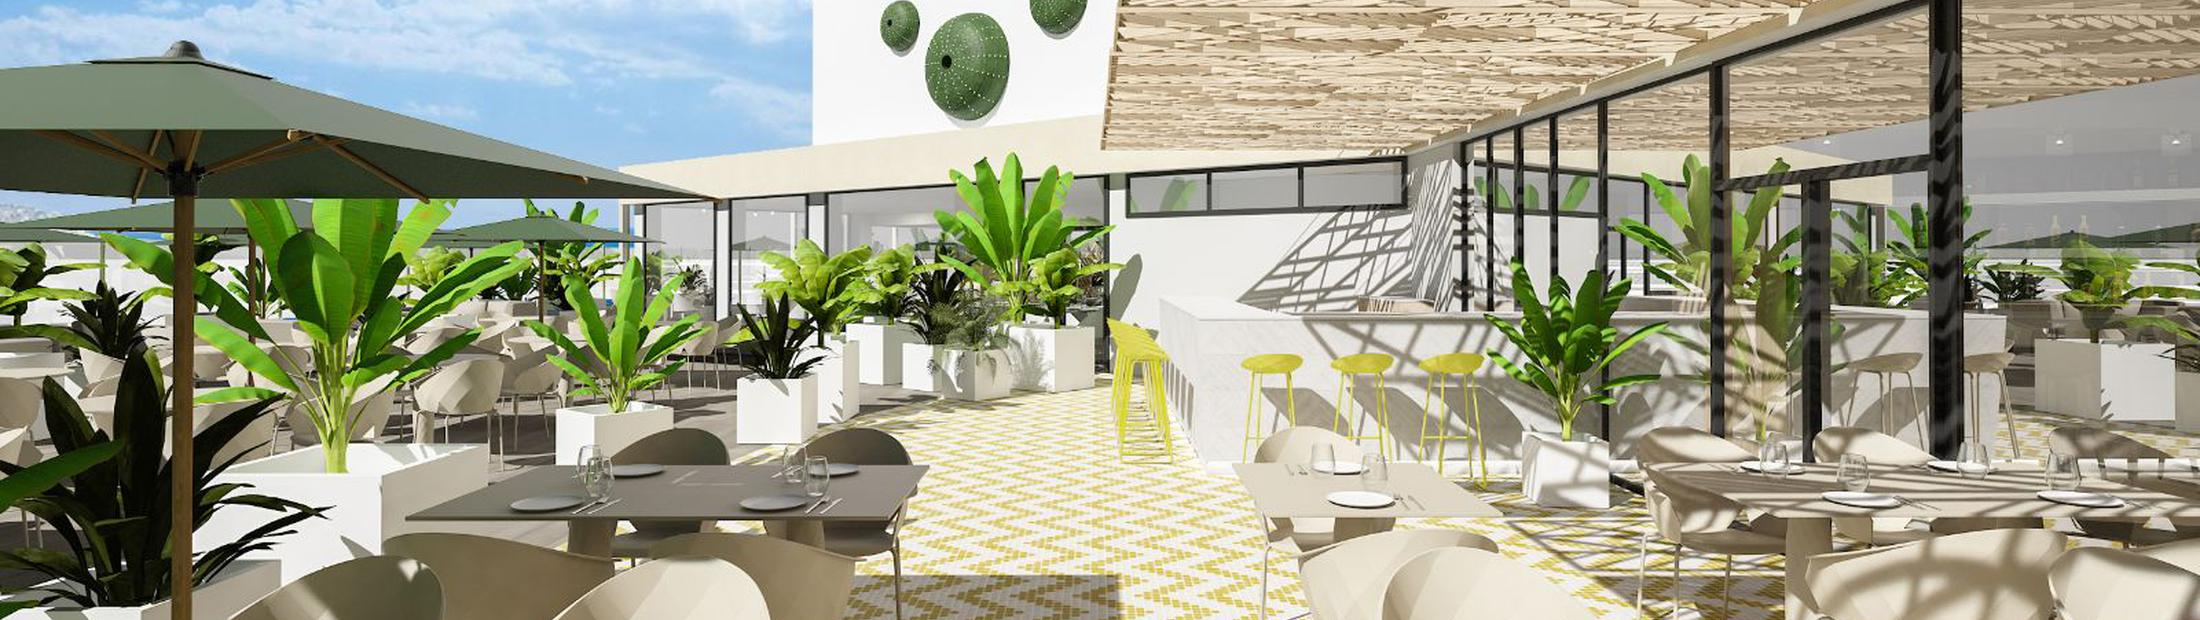 AluaSoul Palma - Refurbished in 2020 **** Mallorca AluaSoul Palma (Adults Only) Hotel Cala Estancia, Mallorca